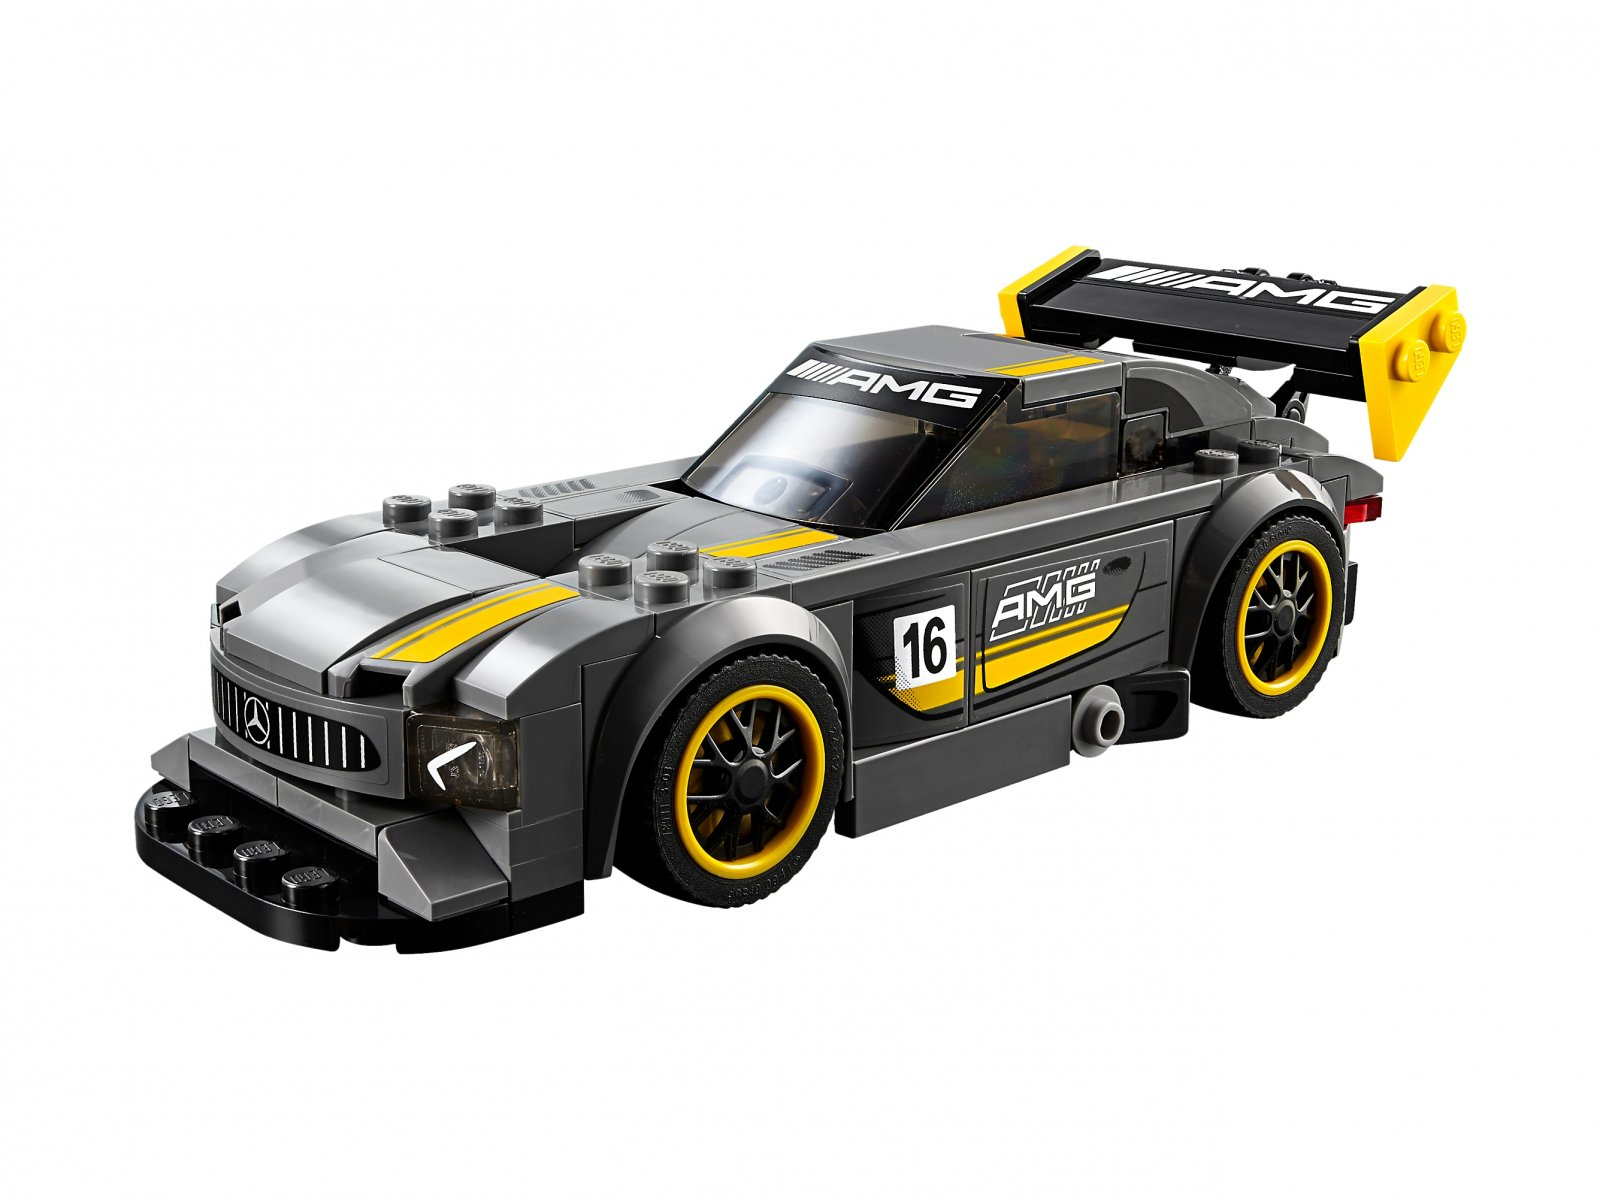 75877 lego speed champions mercedes amg gt3. Black Bedroom Furniture Sets. Home Design Ideas